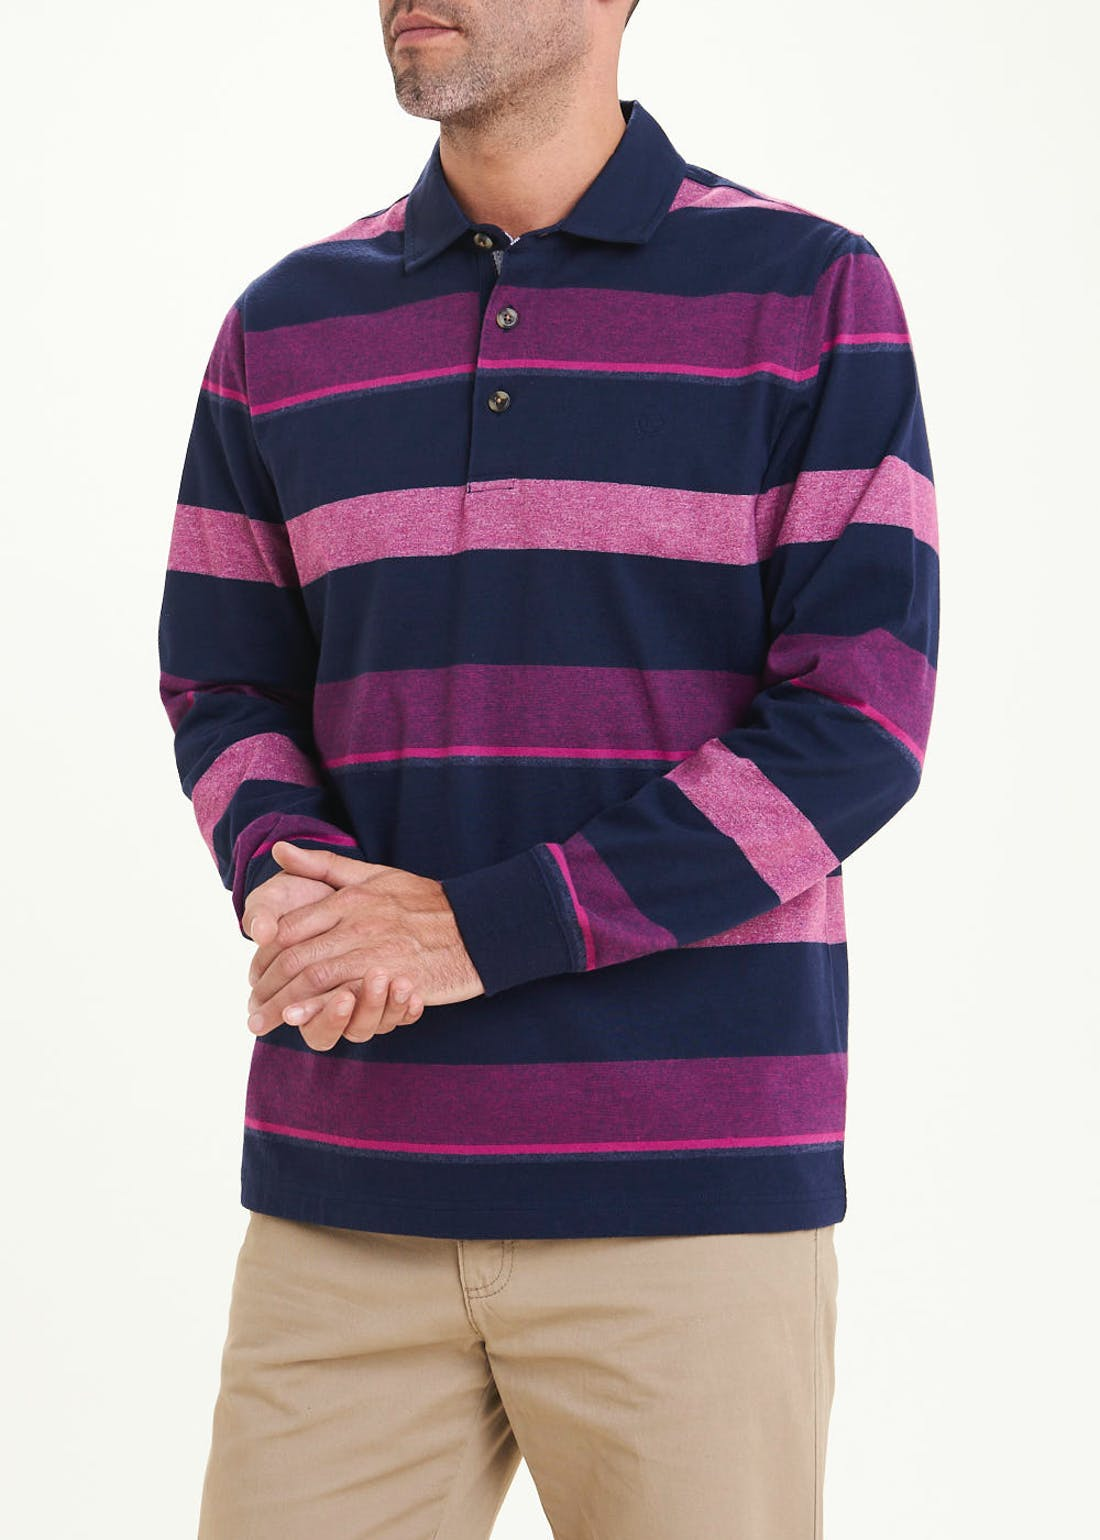 Lincoln Long Sleeve Rugby Polo Shirt